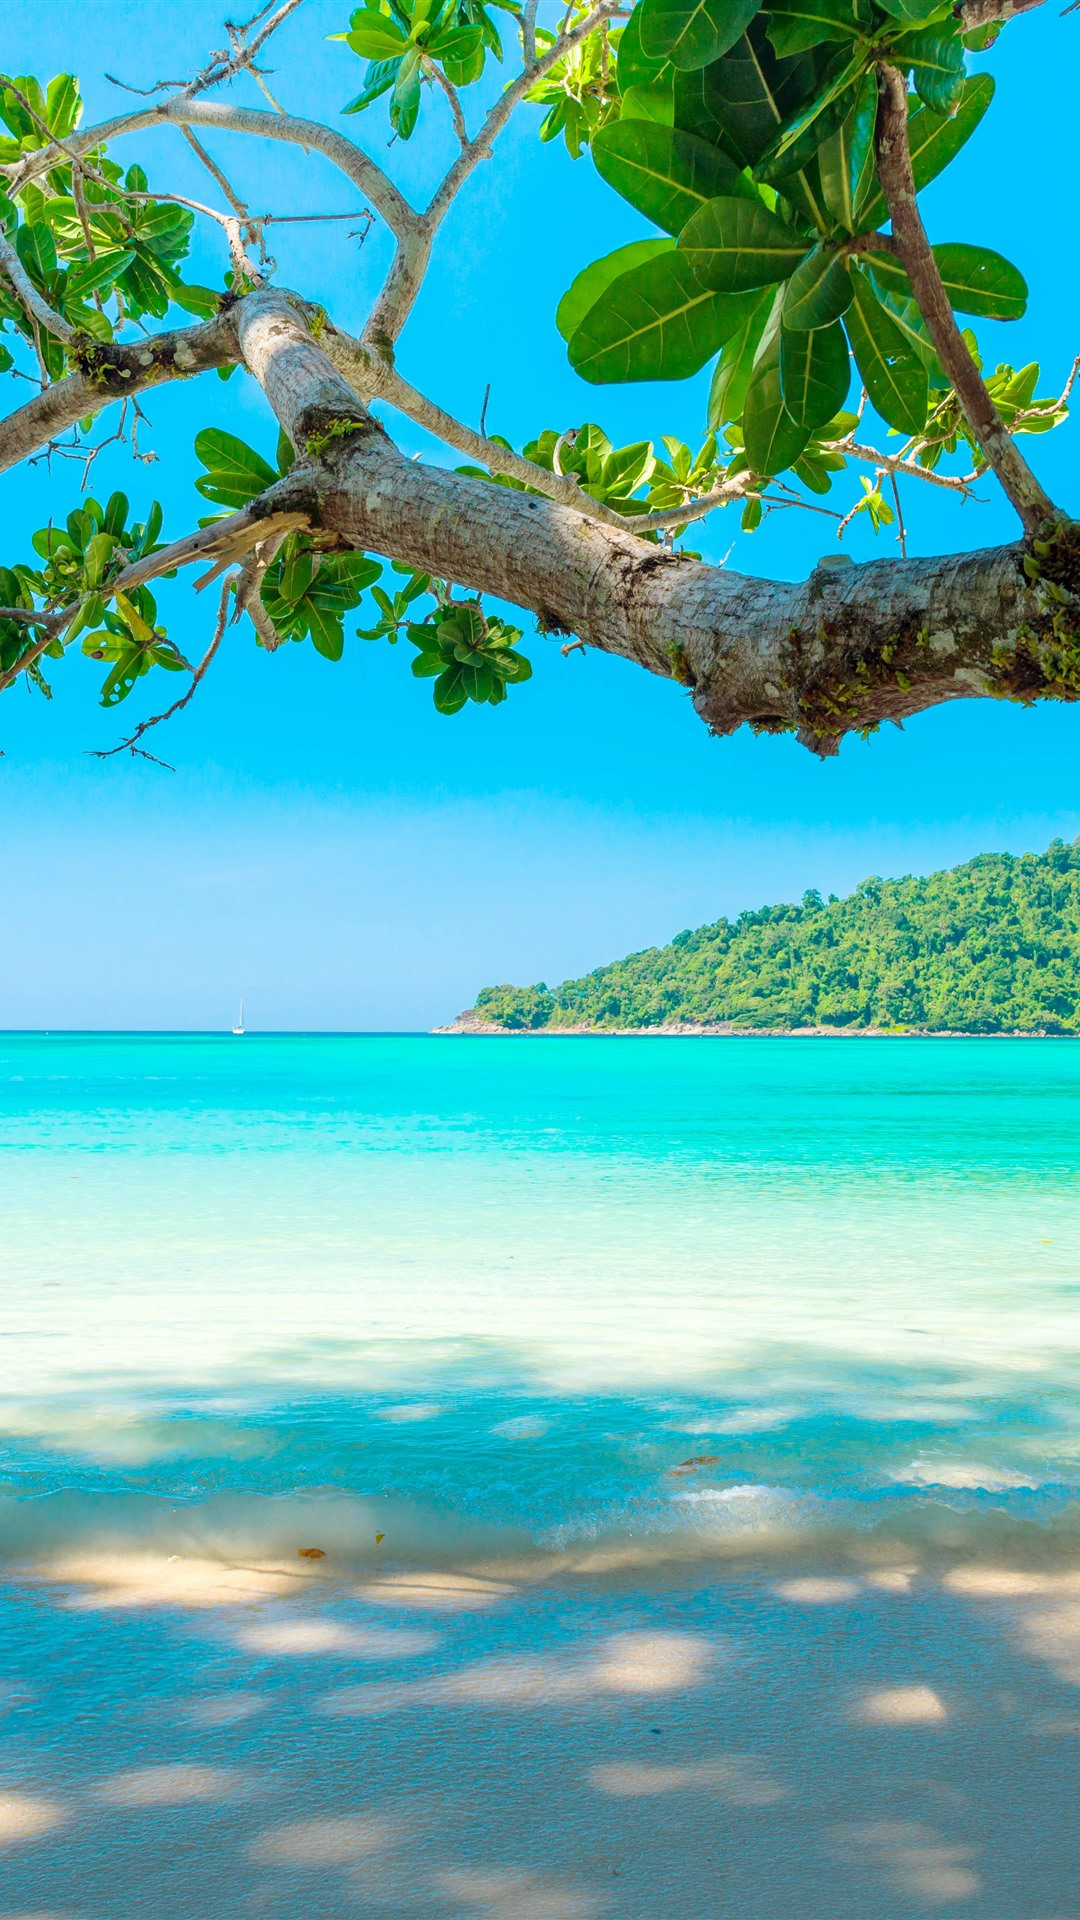 Beautiful Sea Beach Tree Tropical 1242x2688 Iphone 11 Pro Xs Max Wallpaper Background Picture Image